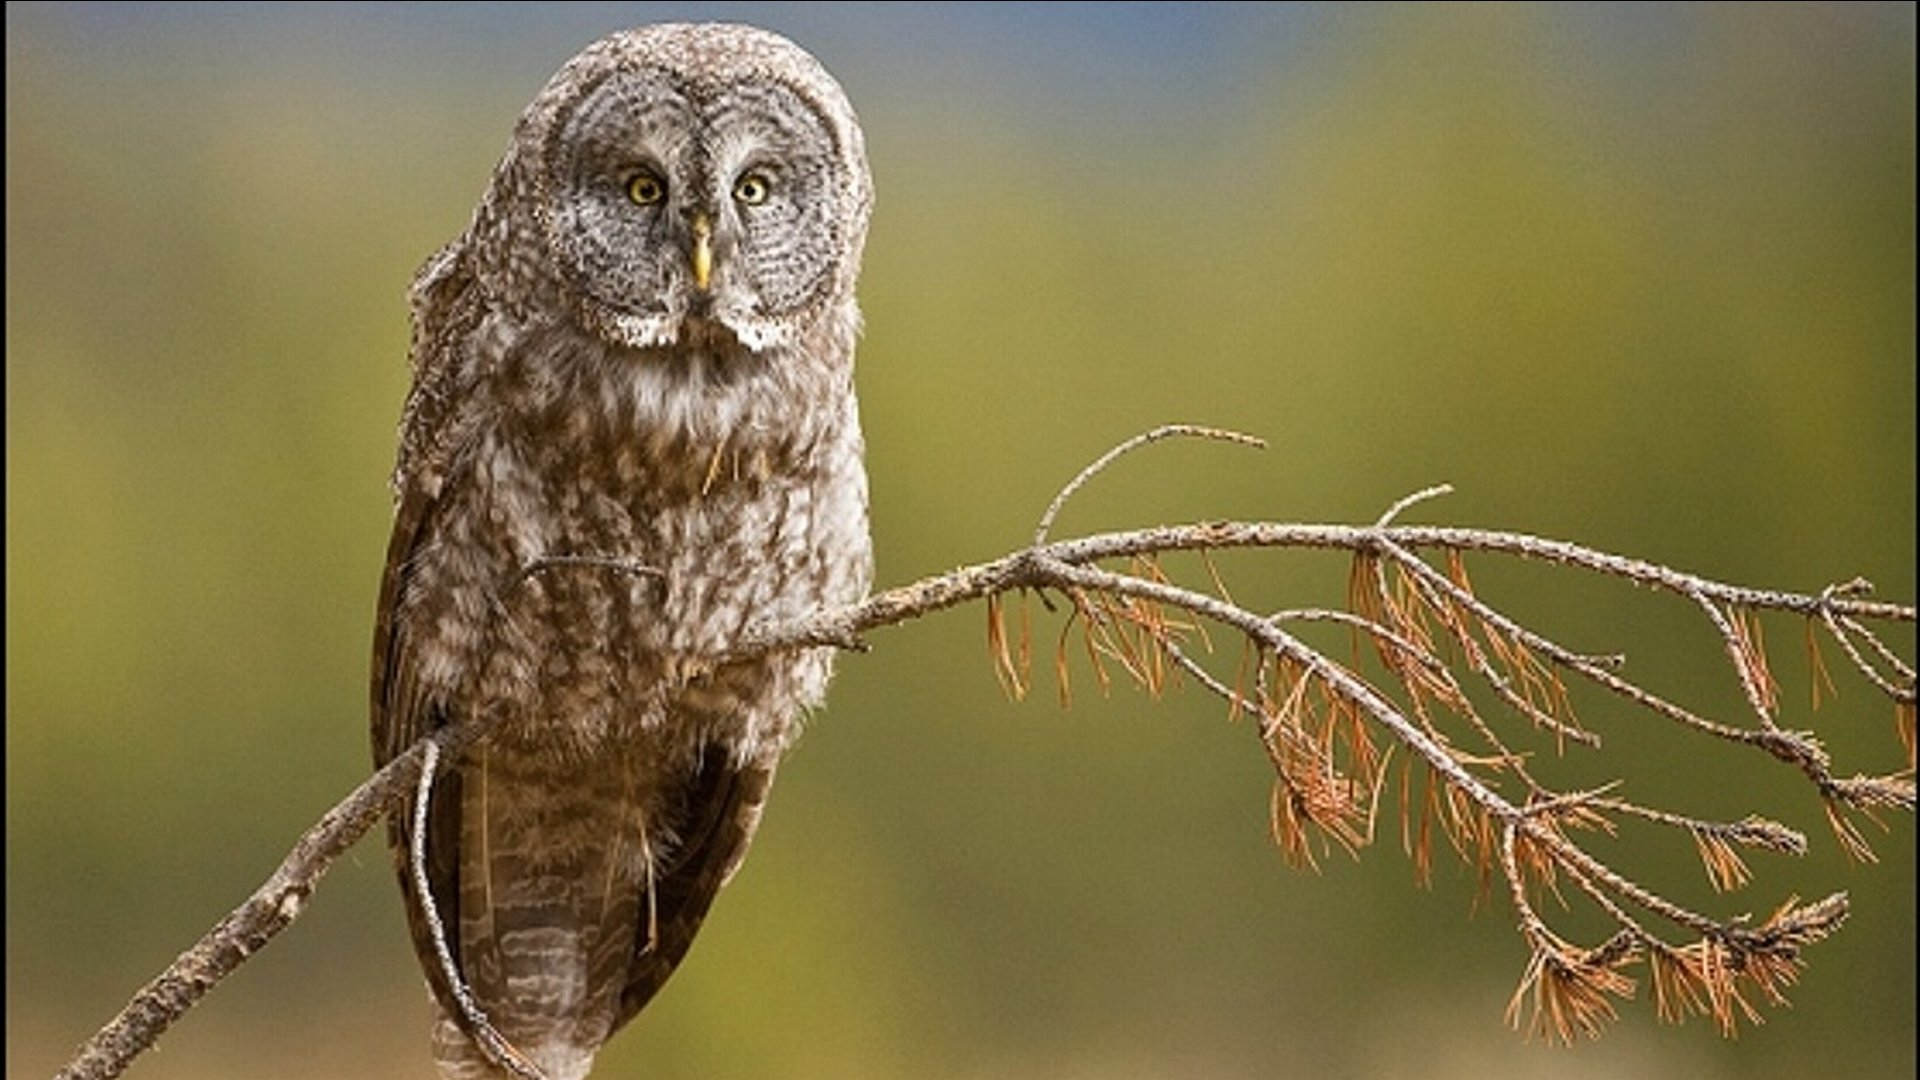 Download 1080p Great Grey Owl PC wallpaper ID:235131 for free